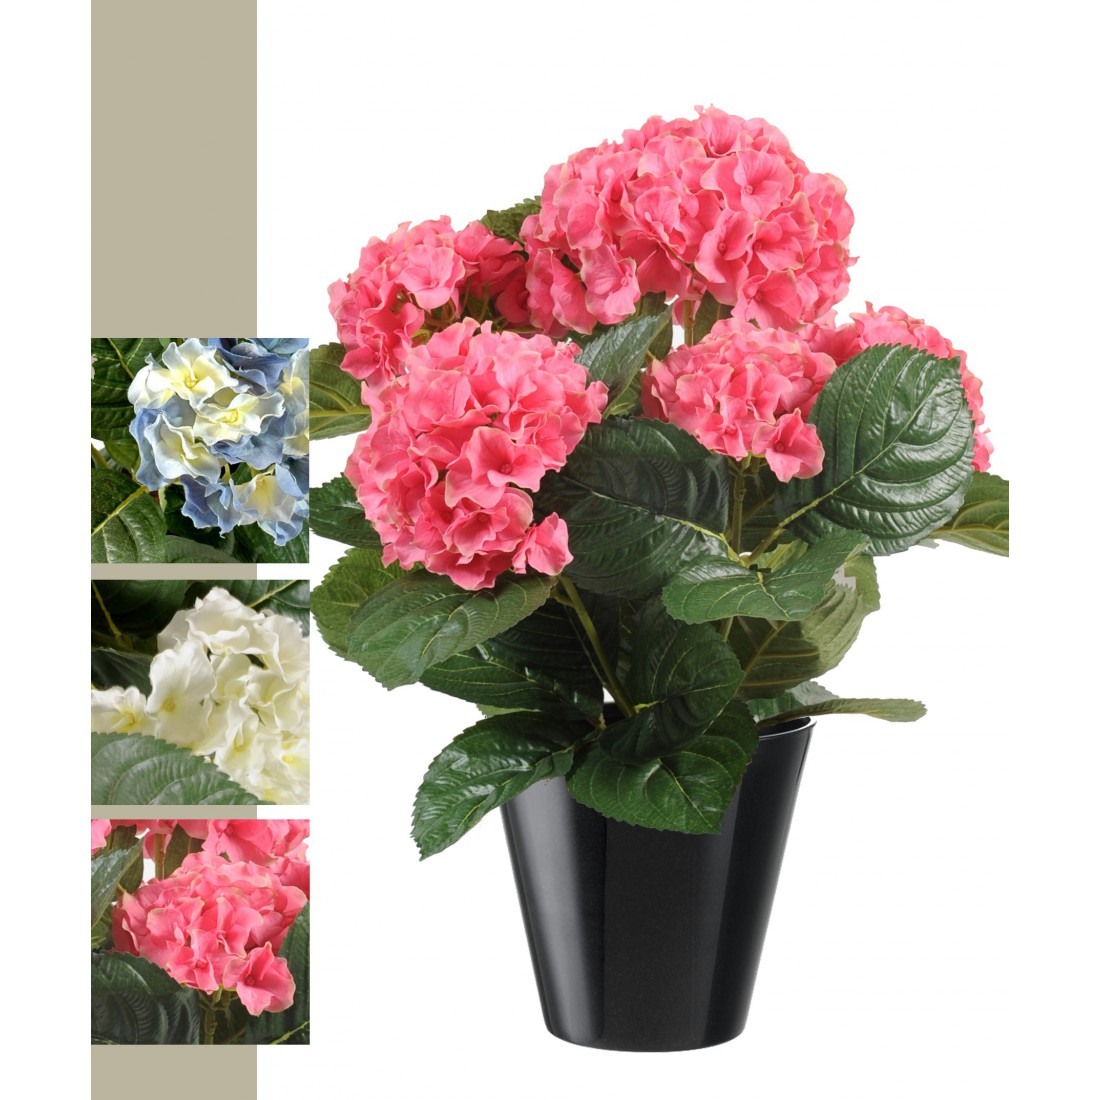 hortensia artificiel 50 cm rose ou bleu fleurs de nos jardins hortensia artificielles reflets. Black Bedroom Furniture Sets. Home Design Ideas